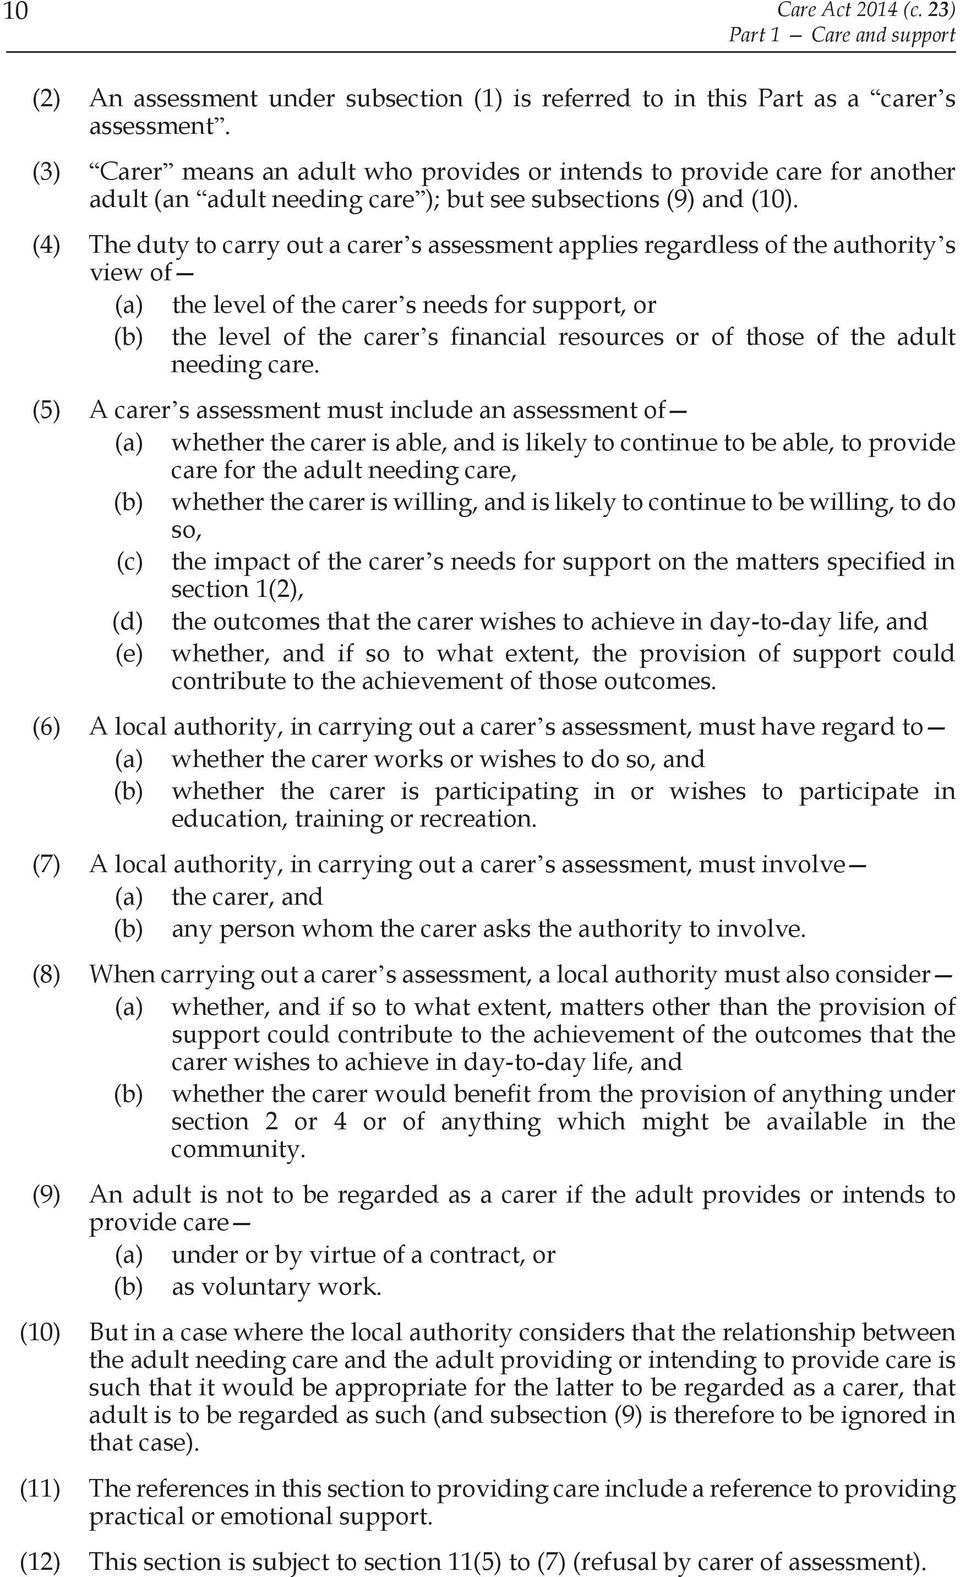 (4) The duty to carry out a carer s assessment applies regardless of the authority s view of (a) the level of the carer s needs for support, or (b) the level of the carer s financial resources or of